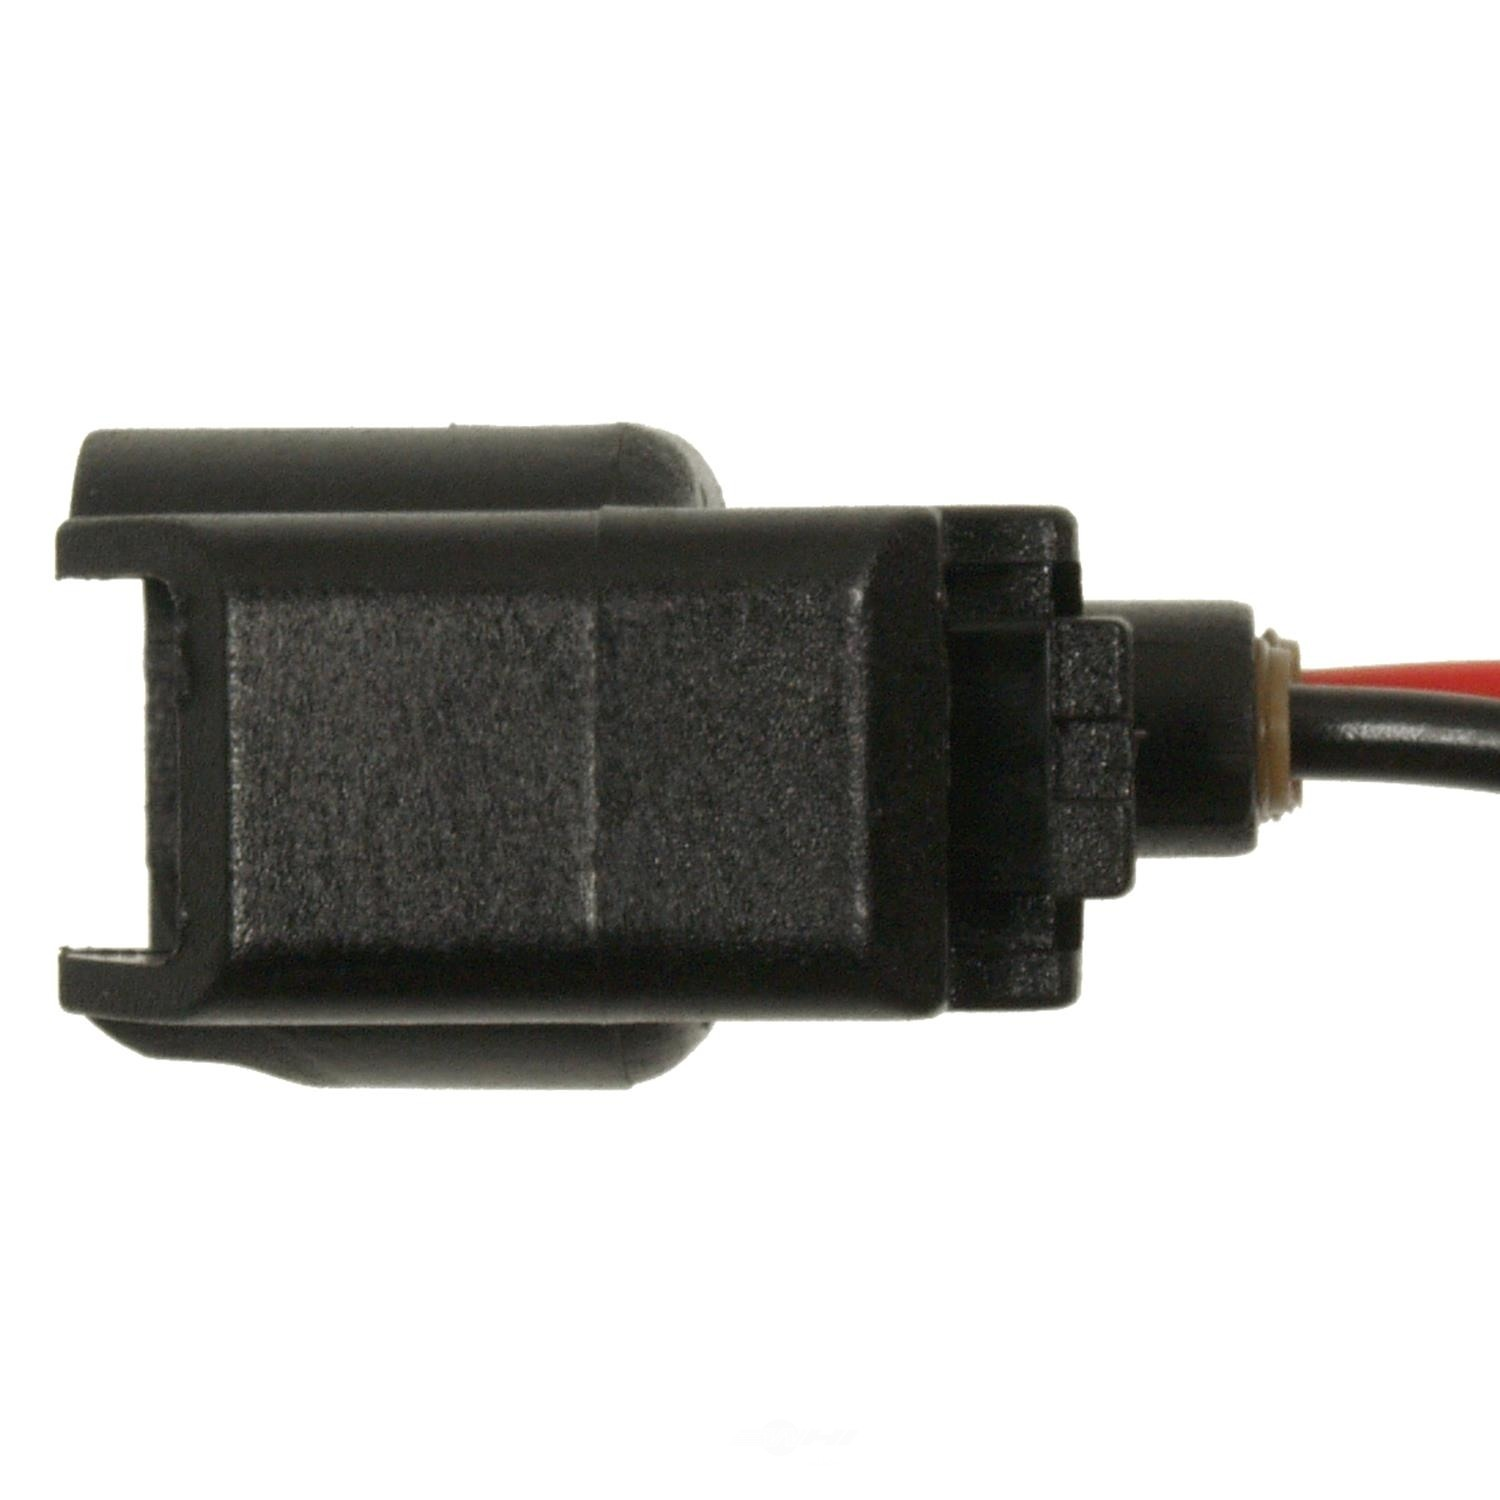 HANDY PACK - Vapor Canister Connector - HDY HP3945